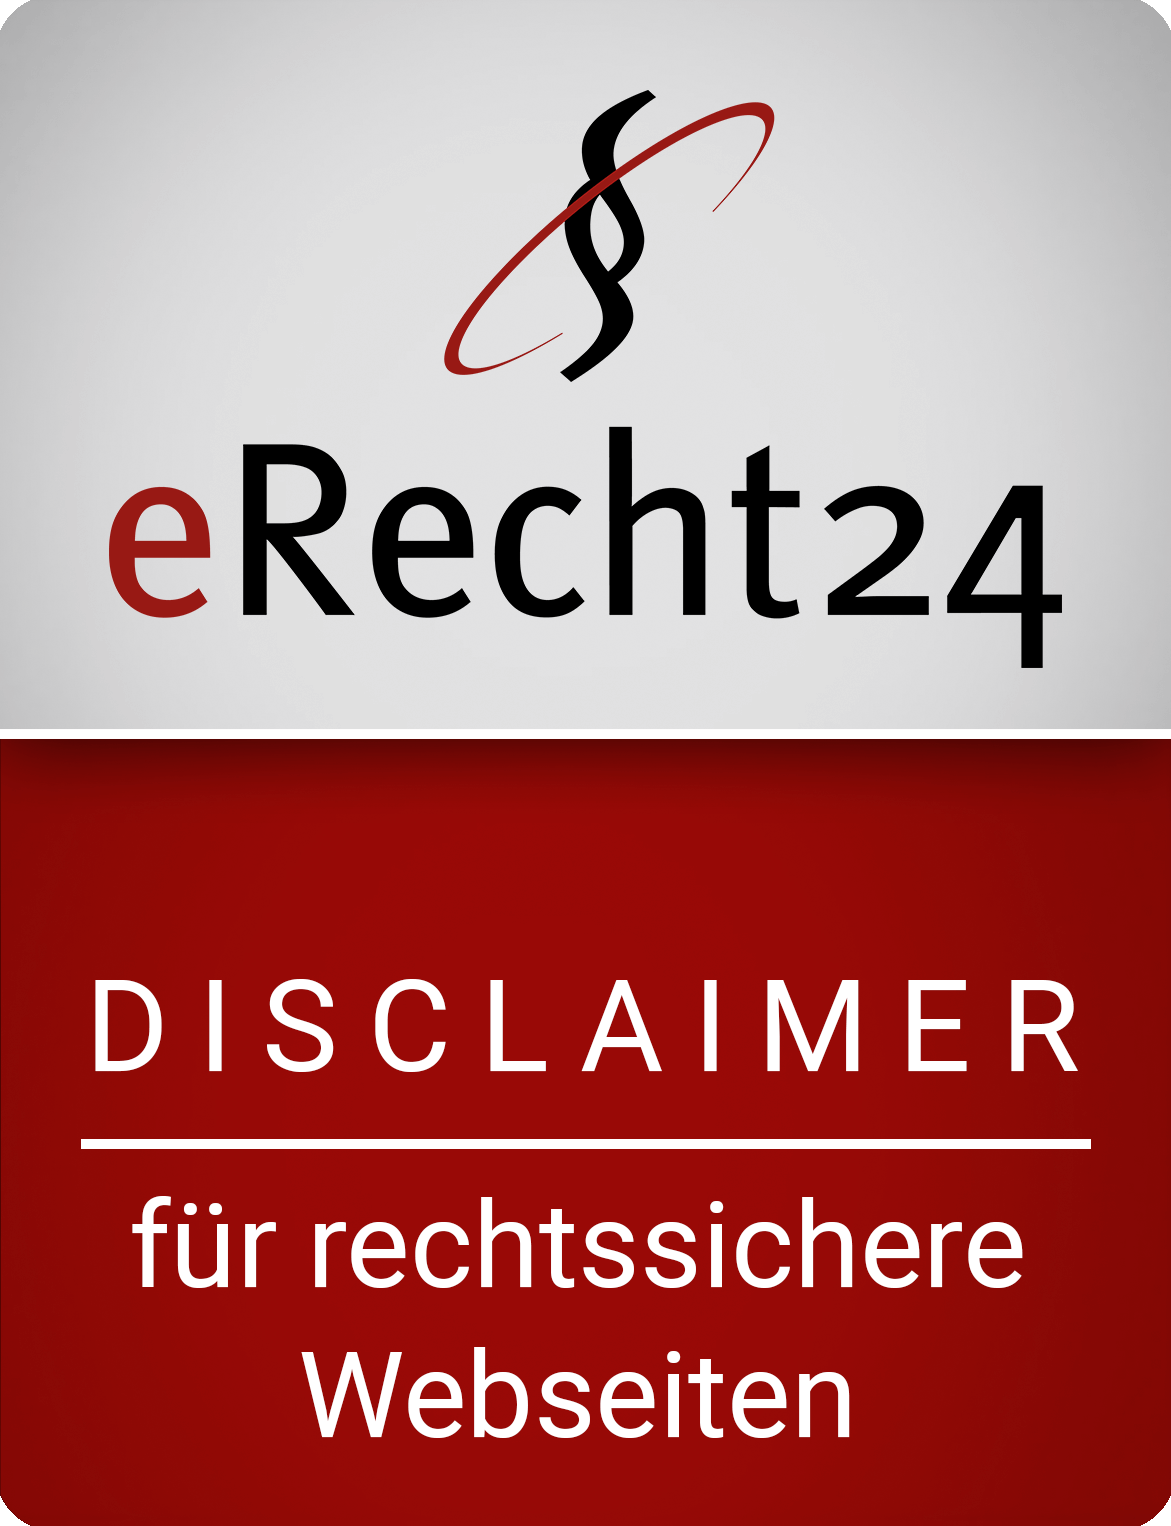 erecht24-siegel-disclaimer-rot-gross.png